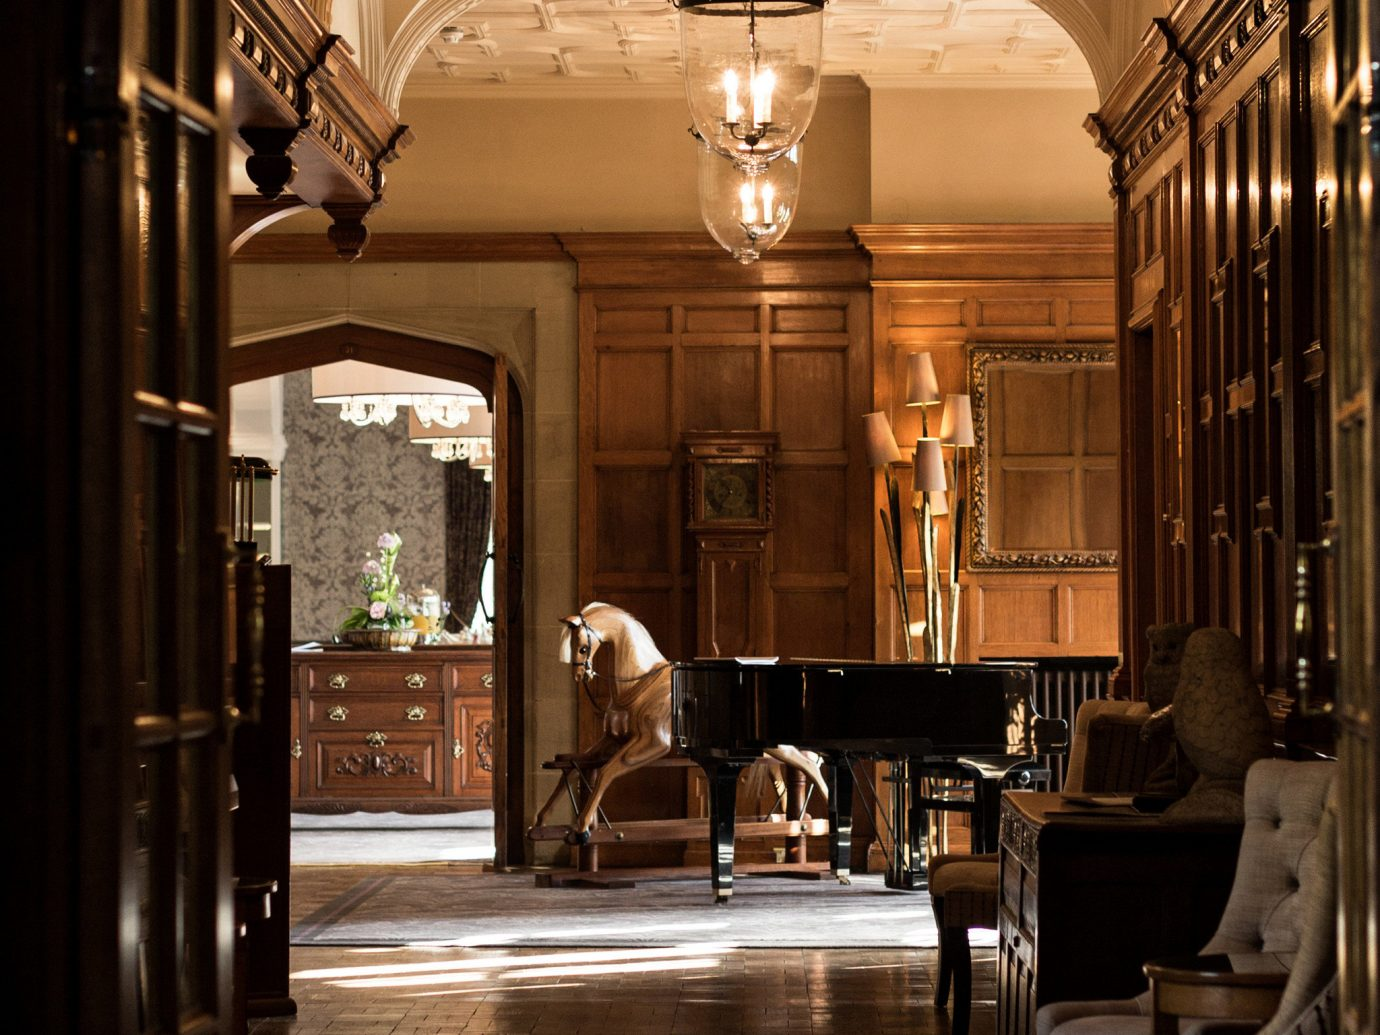 Hotels indoor floor building Lobby Architecture estate interior design lighting hall arch palace tourist attraction colonnade